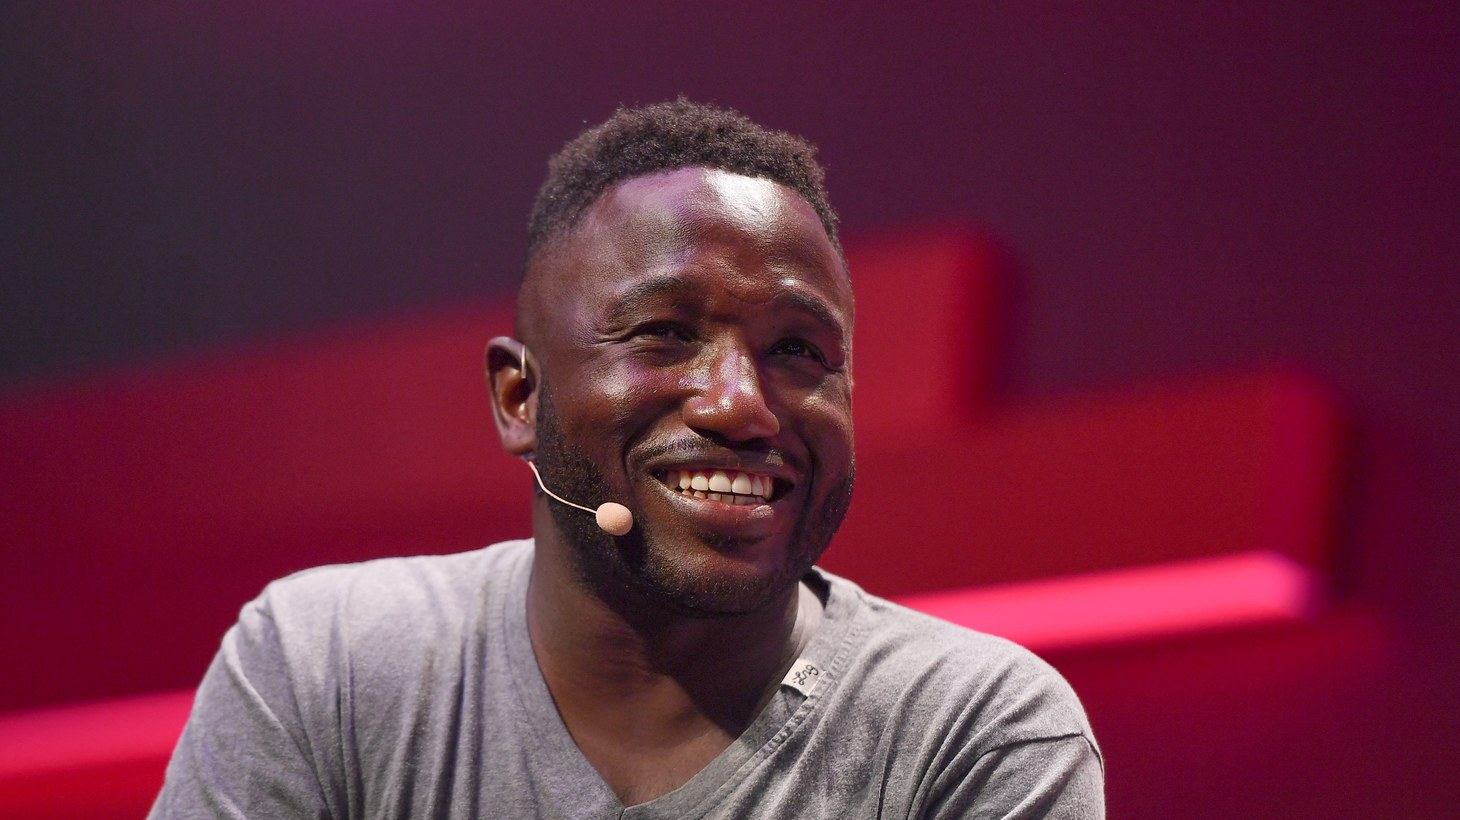 Hannibal Buress on Startup University Stage during day three of RISE 2019 at the Hong Kong Convention and Exhibition Centre in Hong Kong.